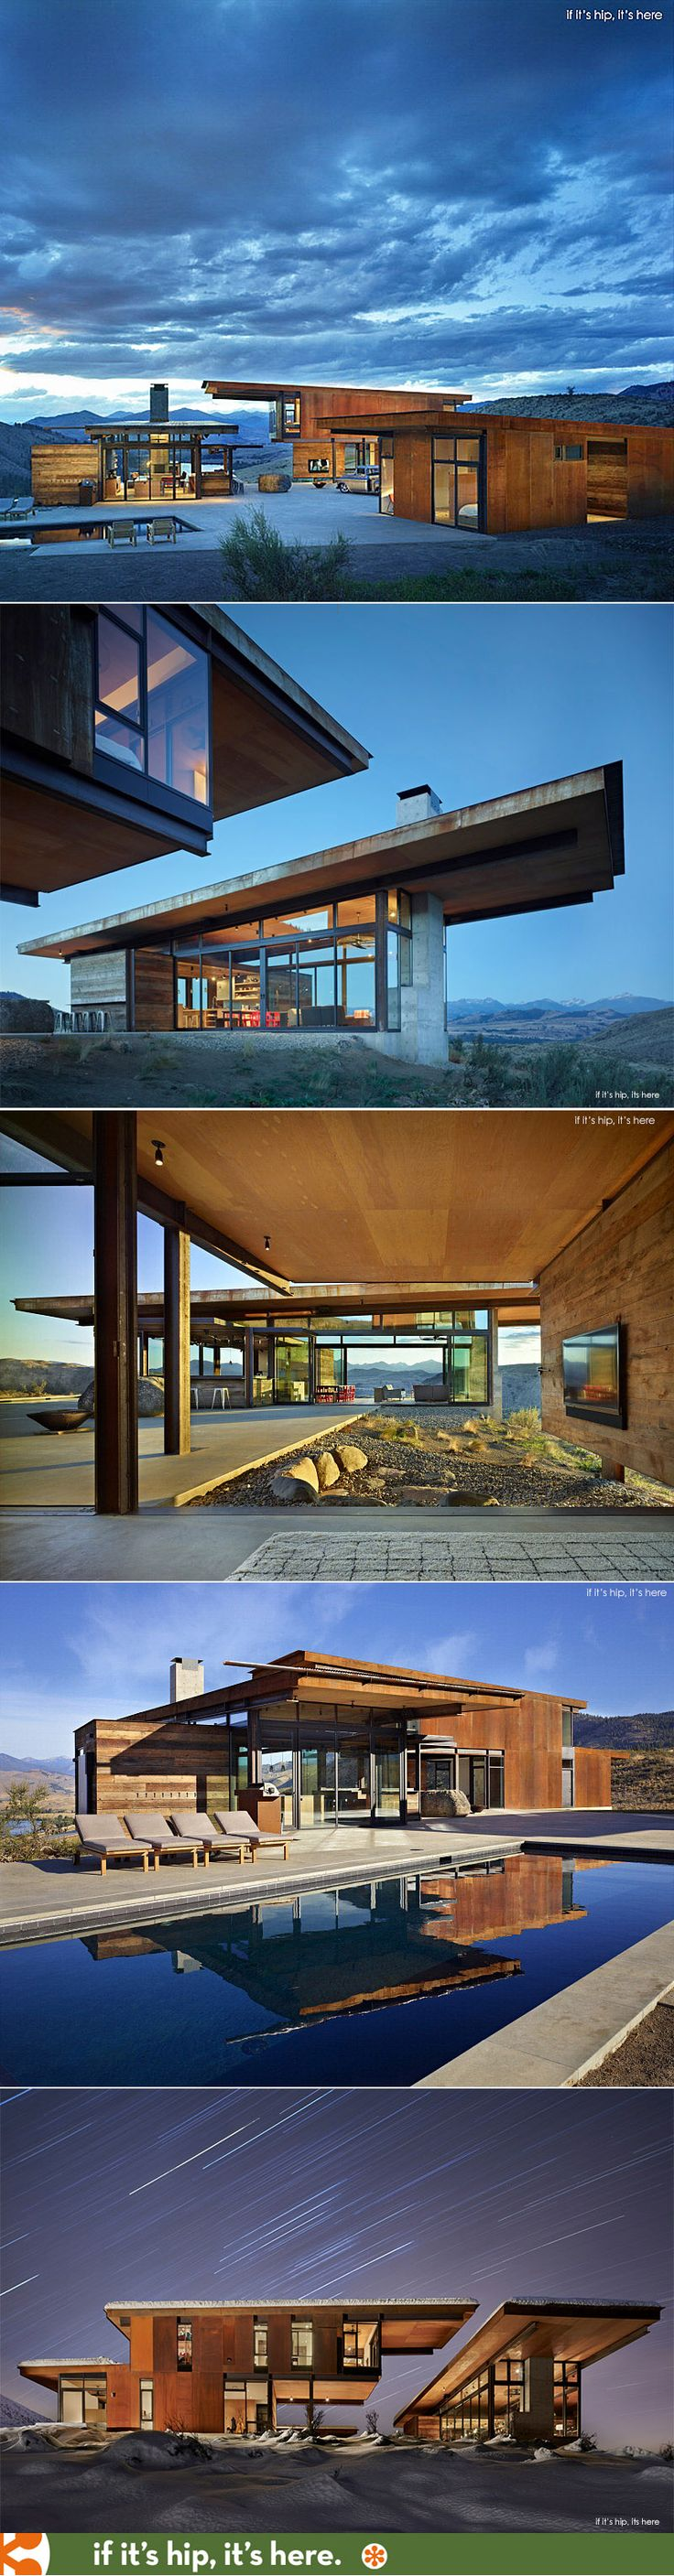 The Studhorse Mountain Compound wins 2015 AIA Housing Award for Architecture.